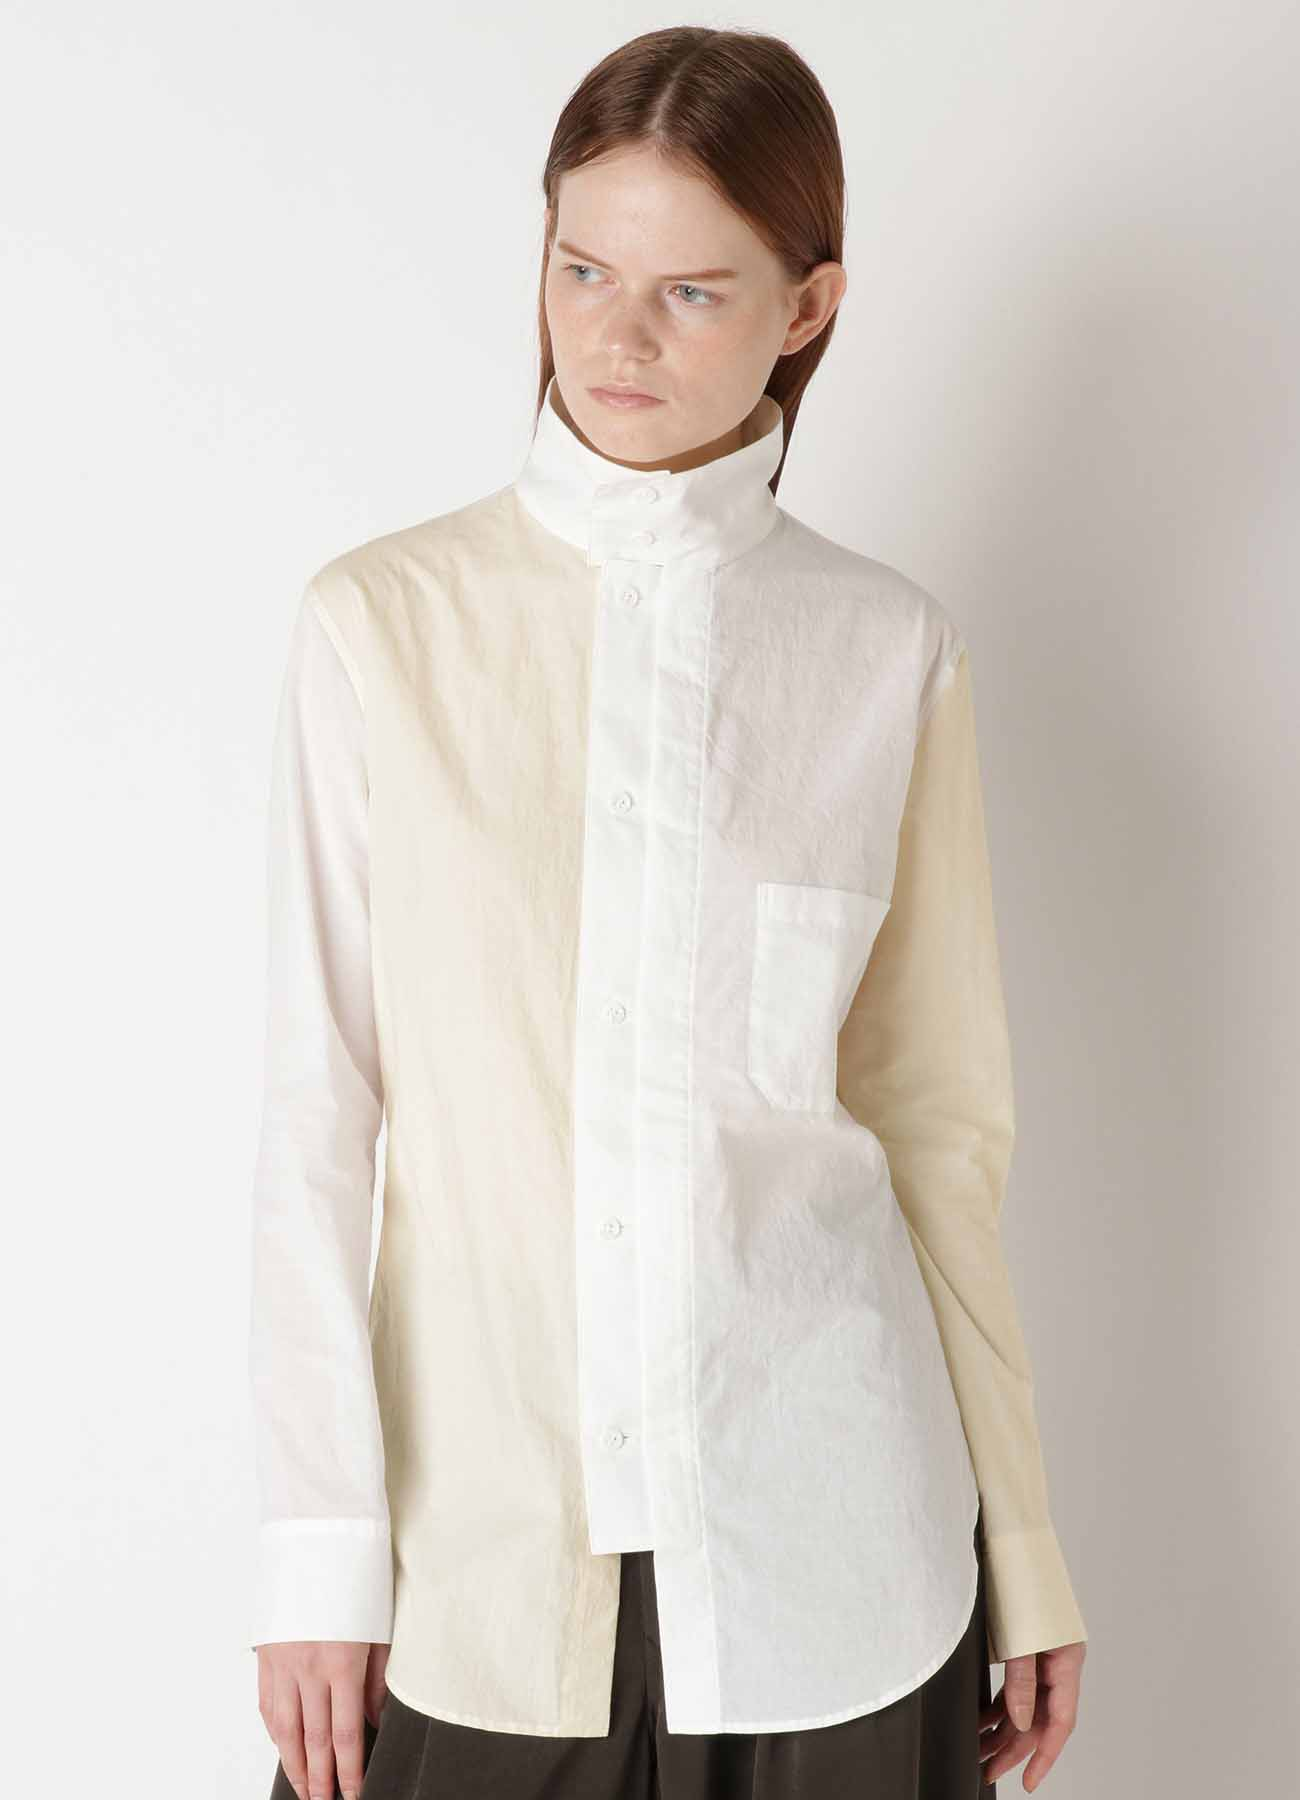 60 LAWN POWDER SNOW WASHER FRONT OPEN SQUARE BLOUSE